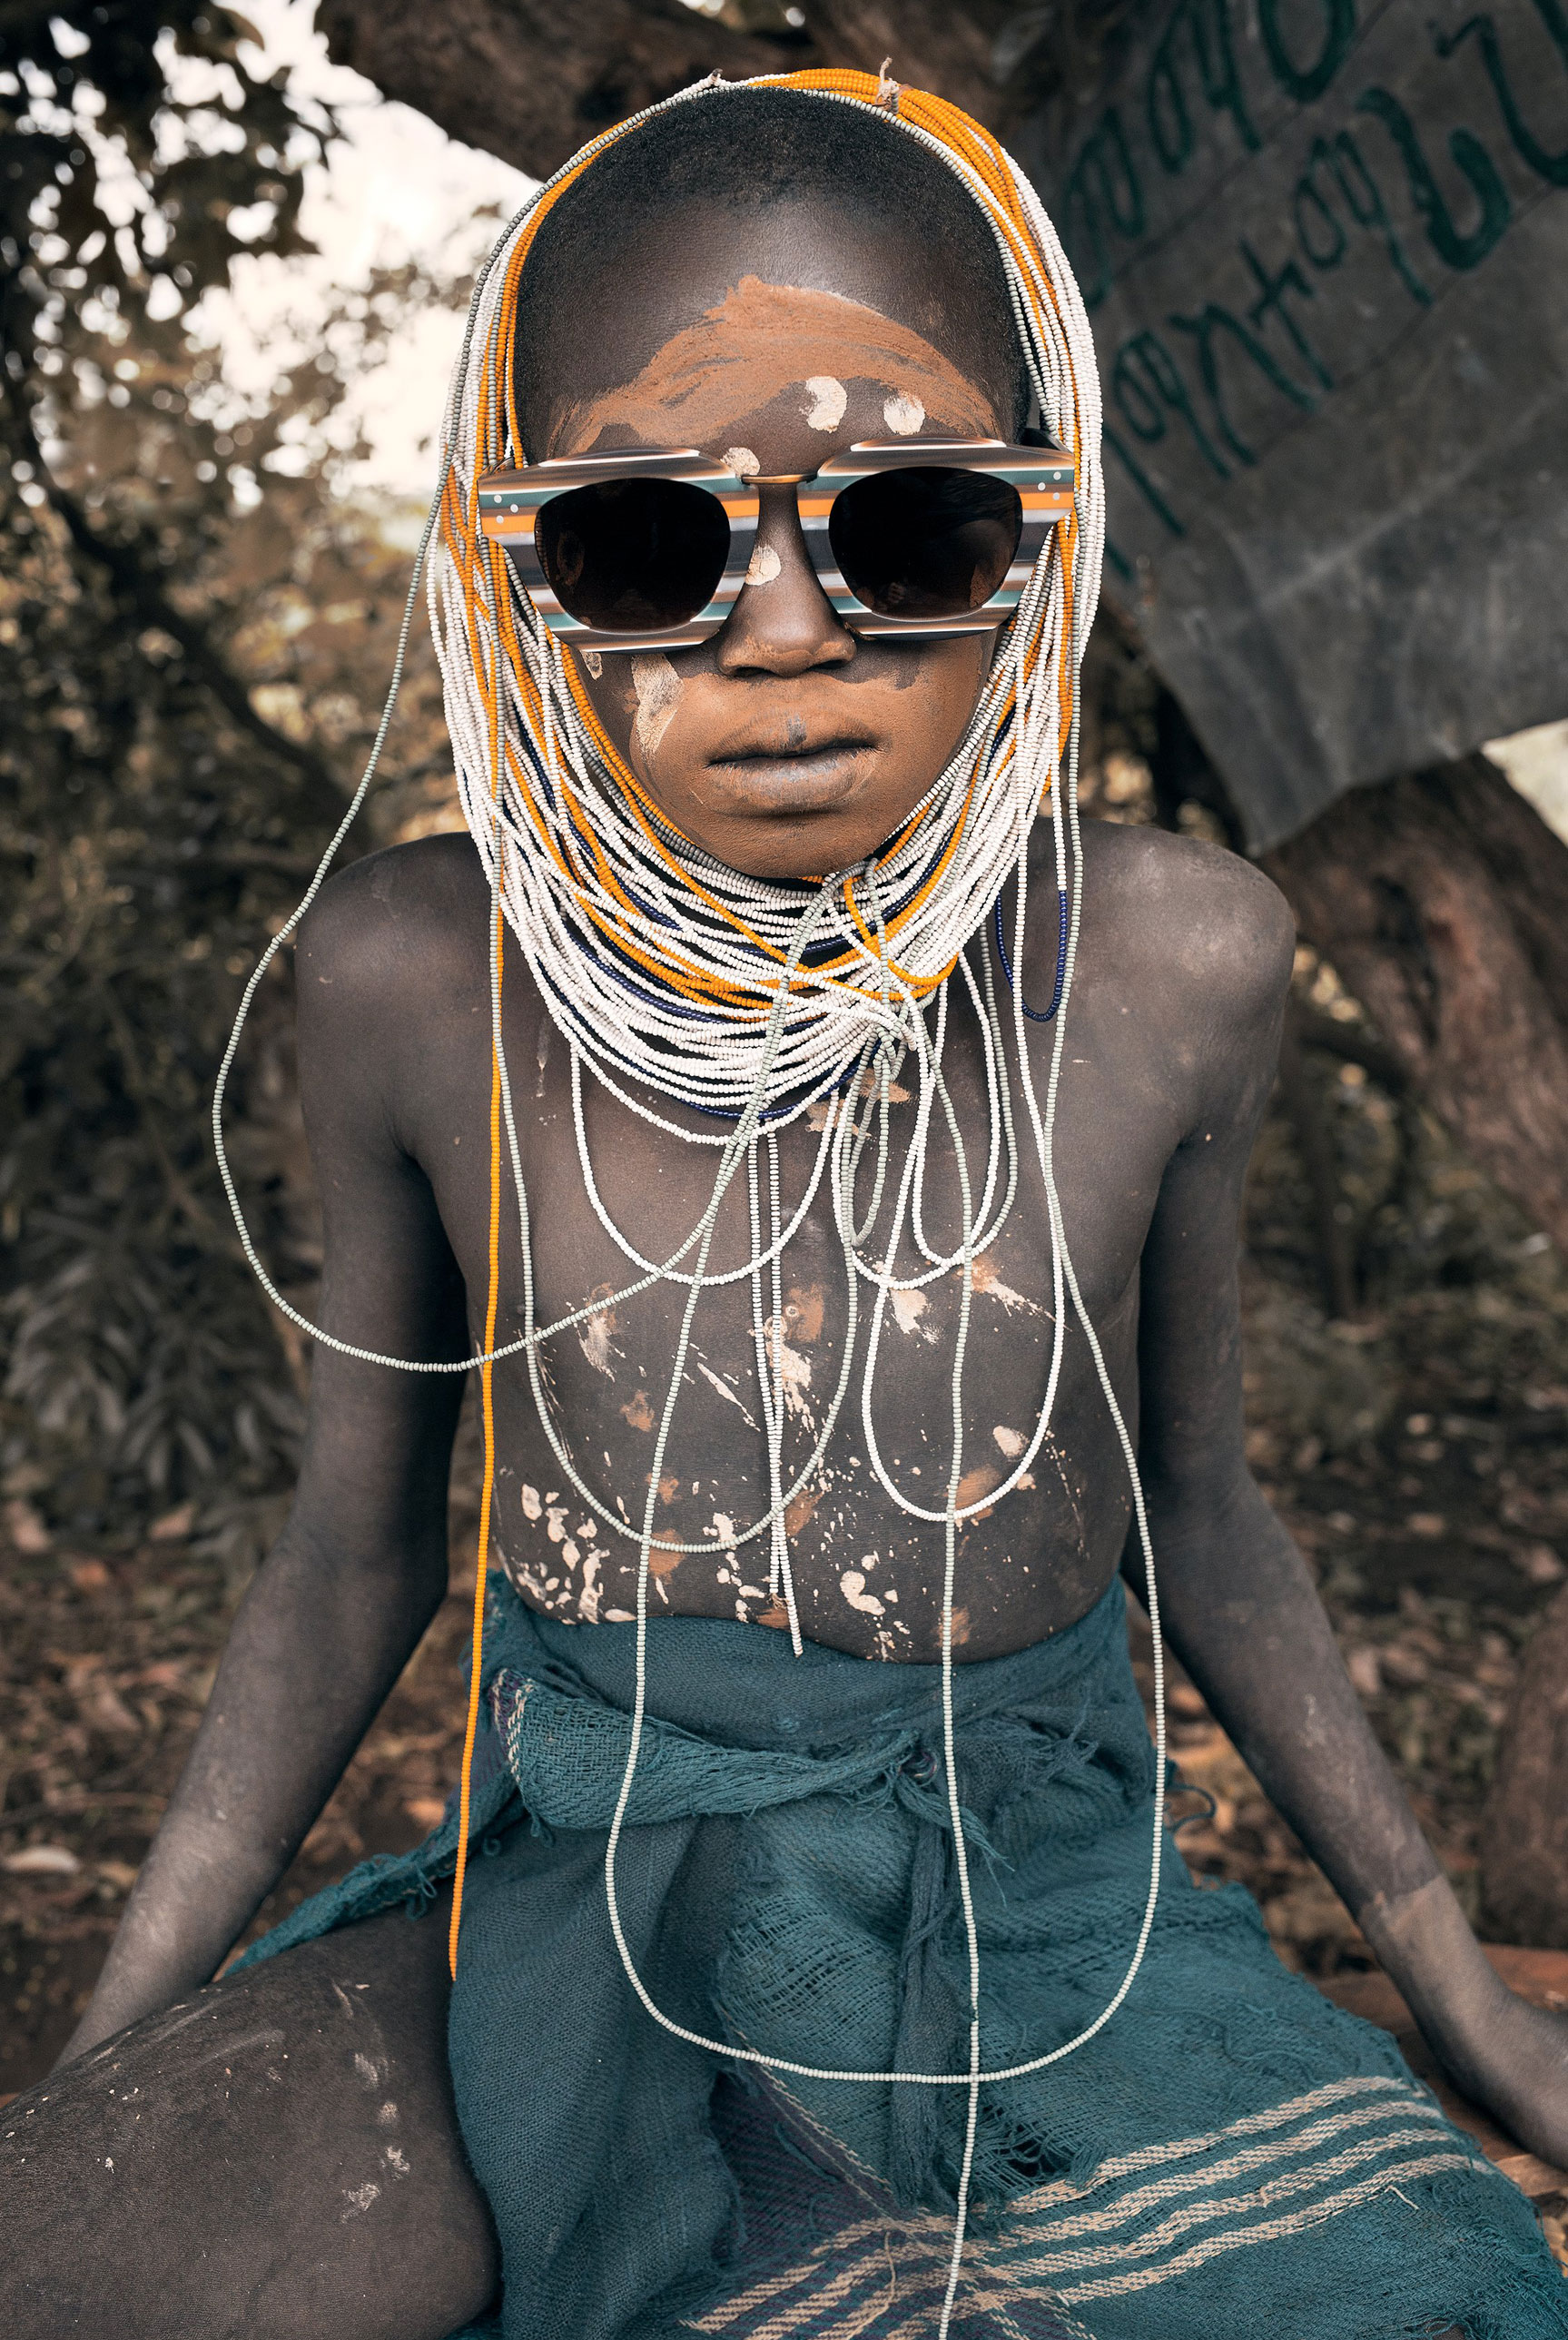 the Surma tribe and Marisa Papen nude by Jesse Walker - Enki EyeWear - Ethiopia 2017